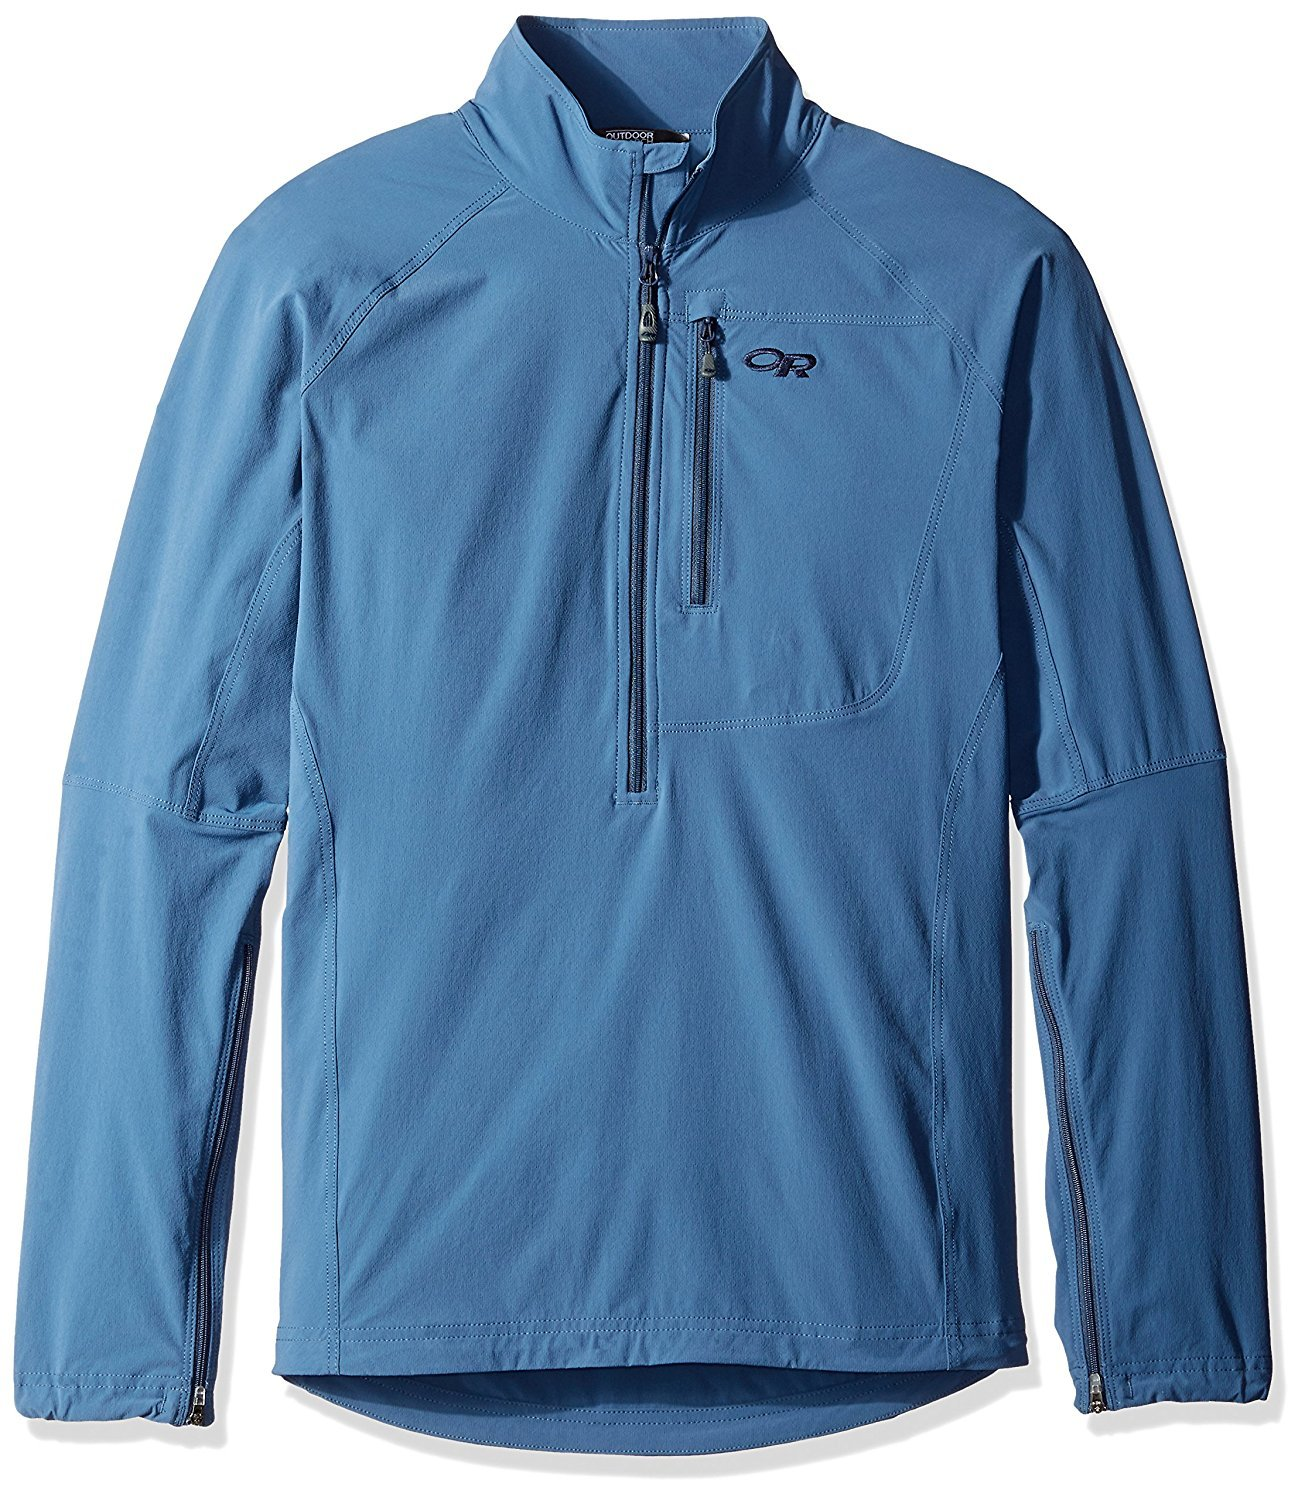 Outdoor-Research-Men-039-s-Ferrosi-Wind-Shirt